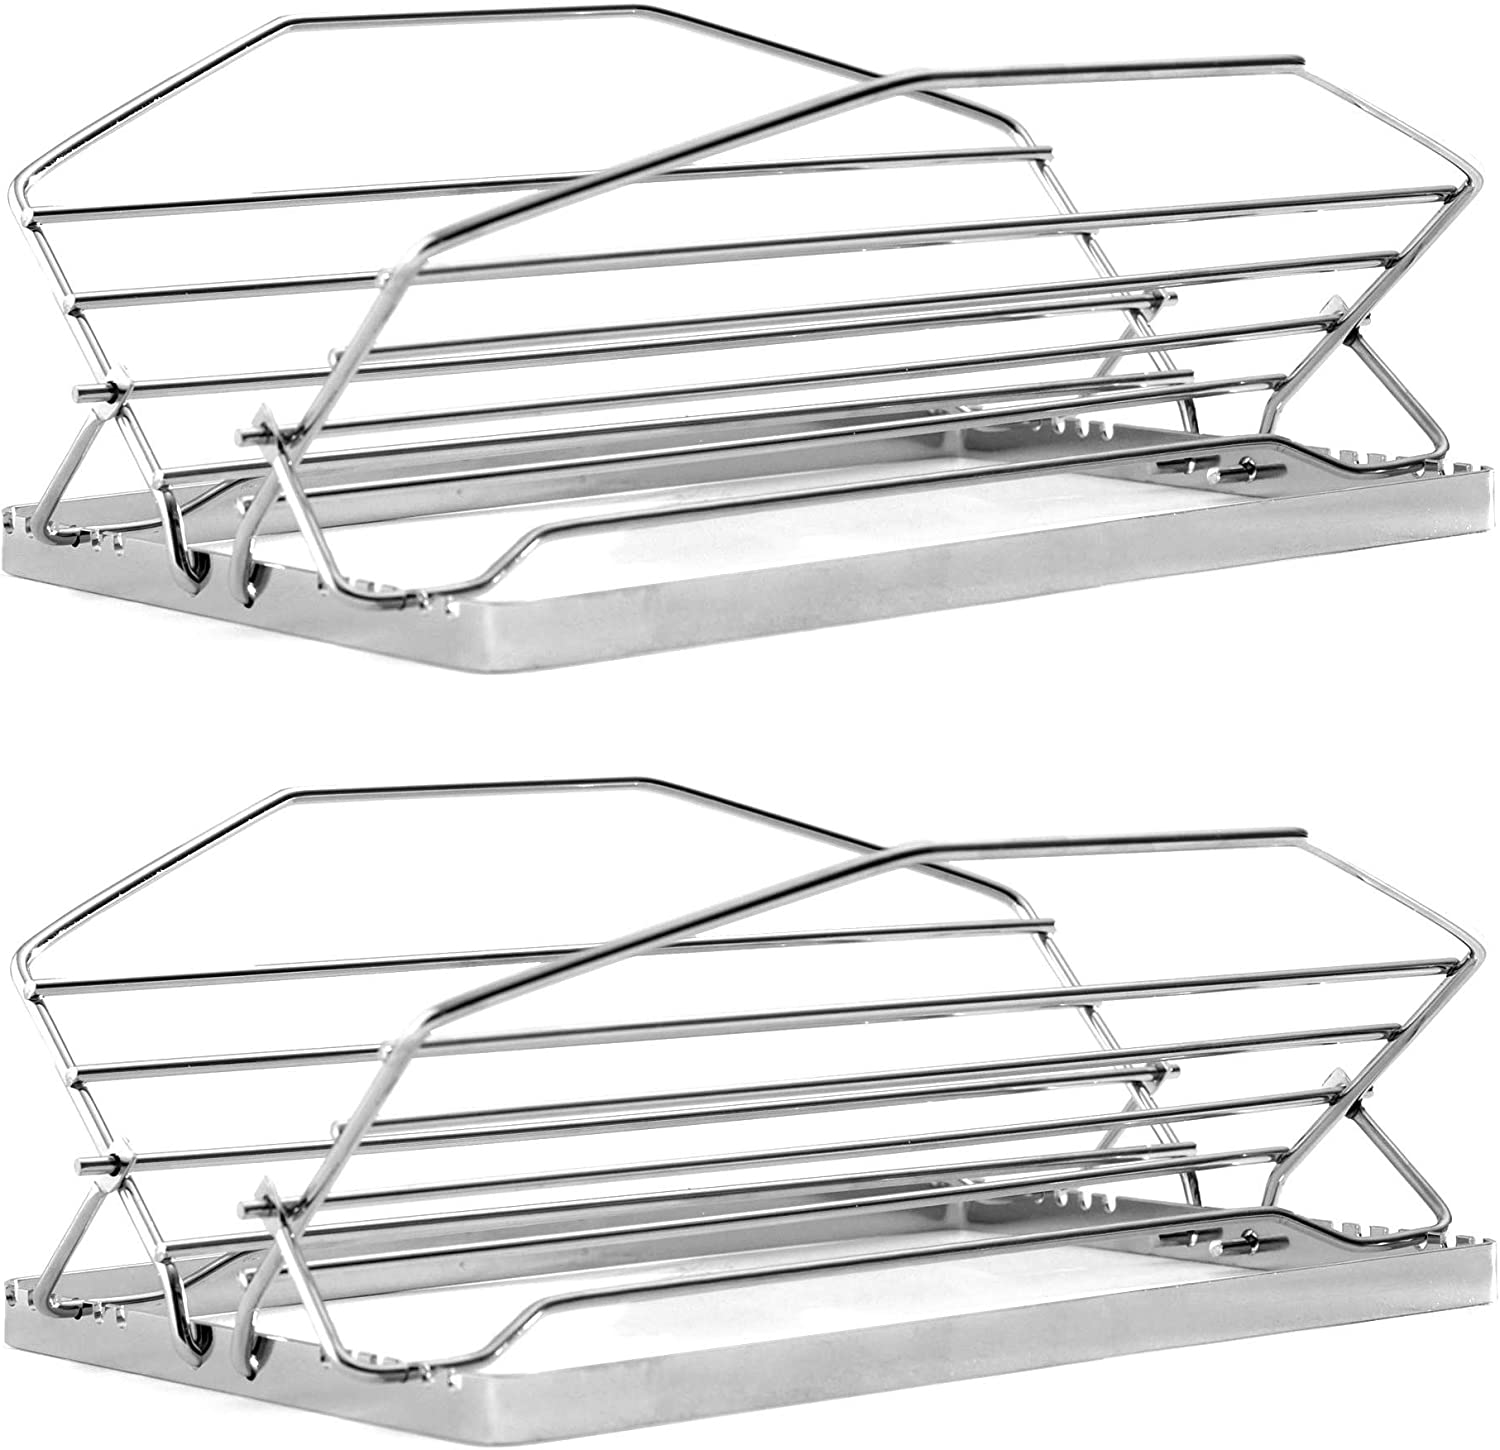 Norpro Adjustable Roast Rack Nickel-plated, 11 inches, Silver: Kitchen & Dining